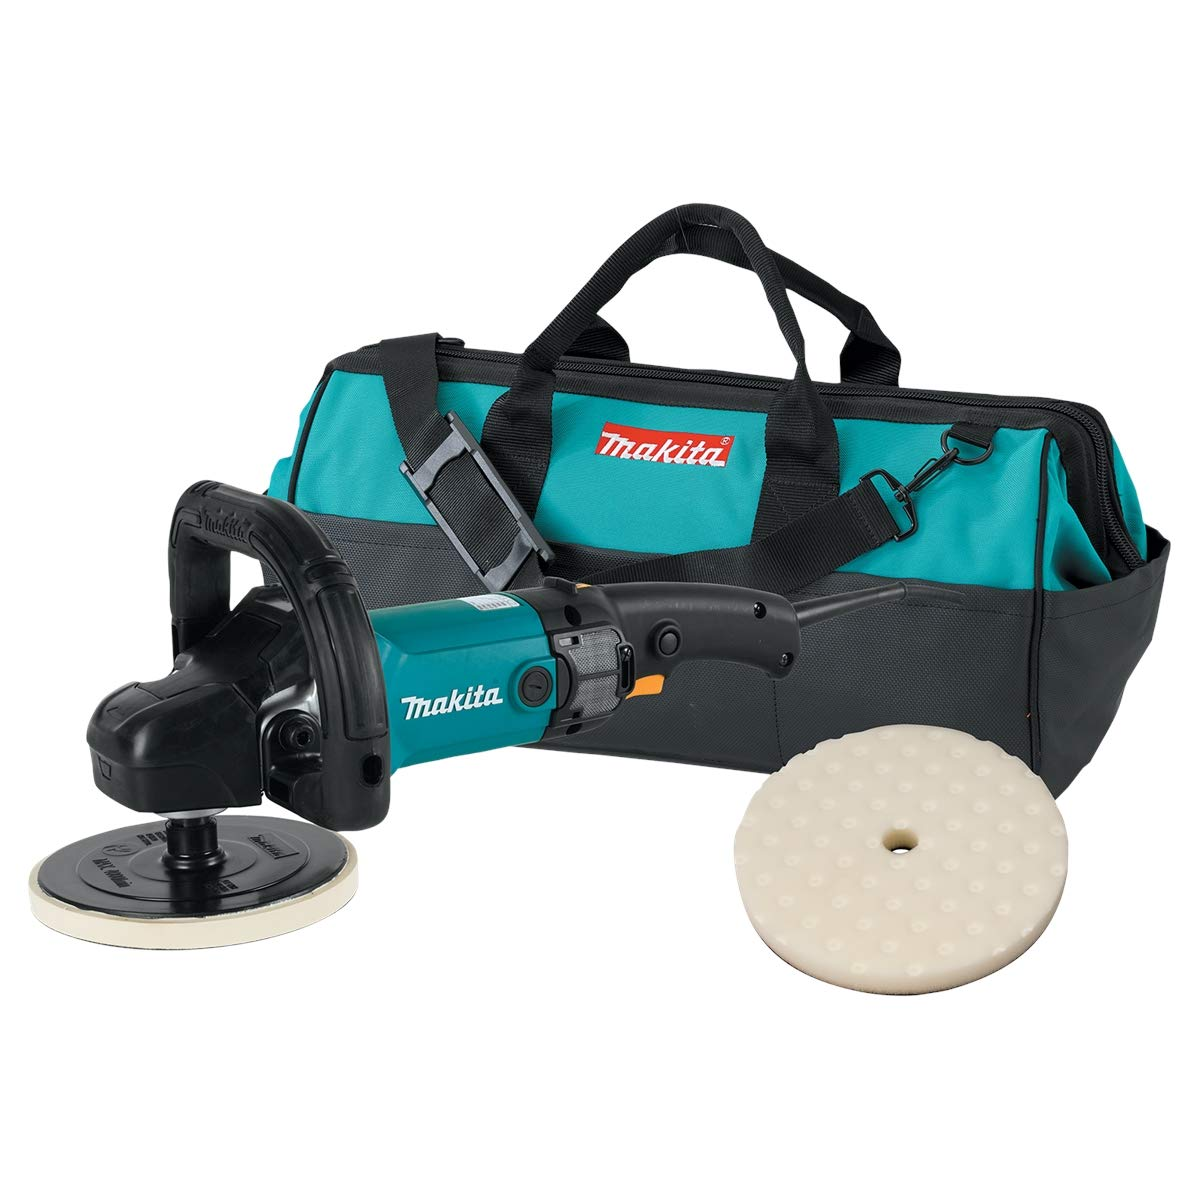 Makita 9237CX2 Polisher Sander Kit